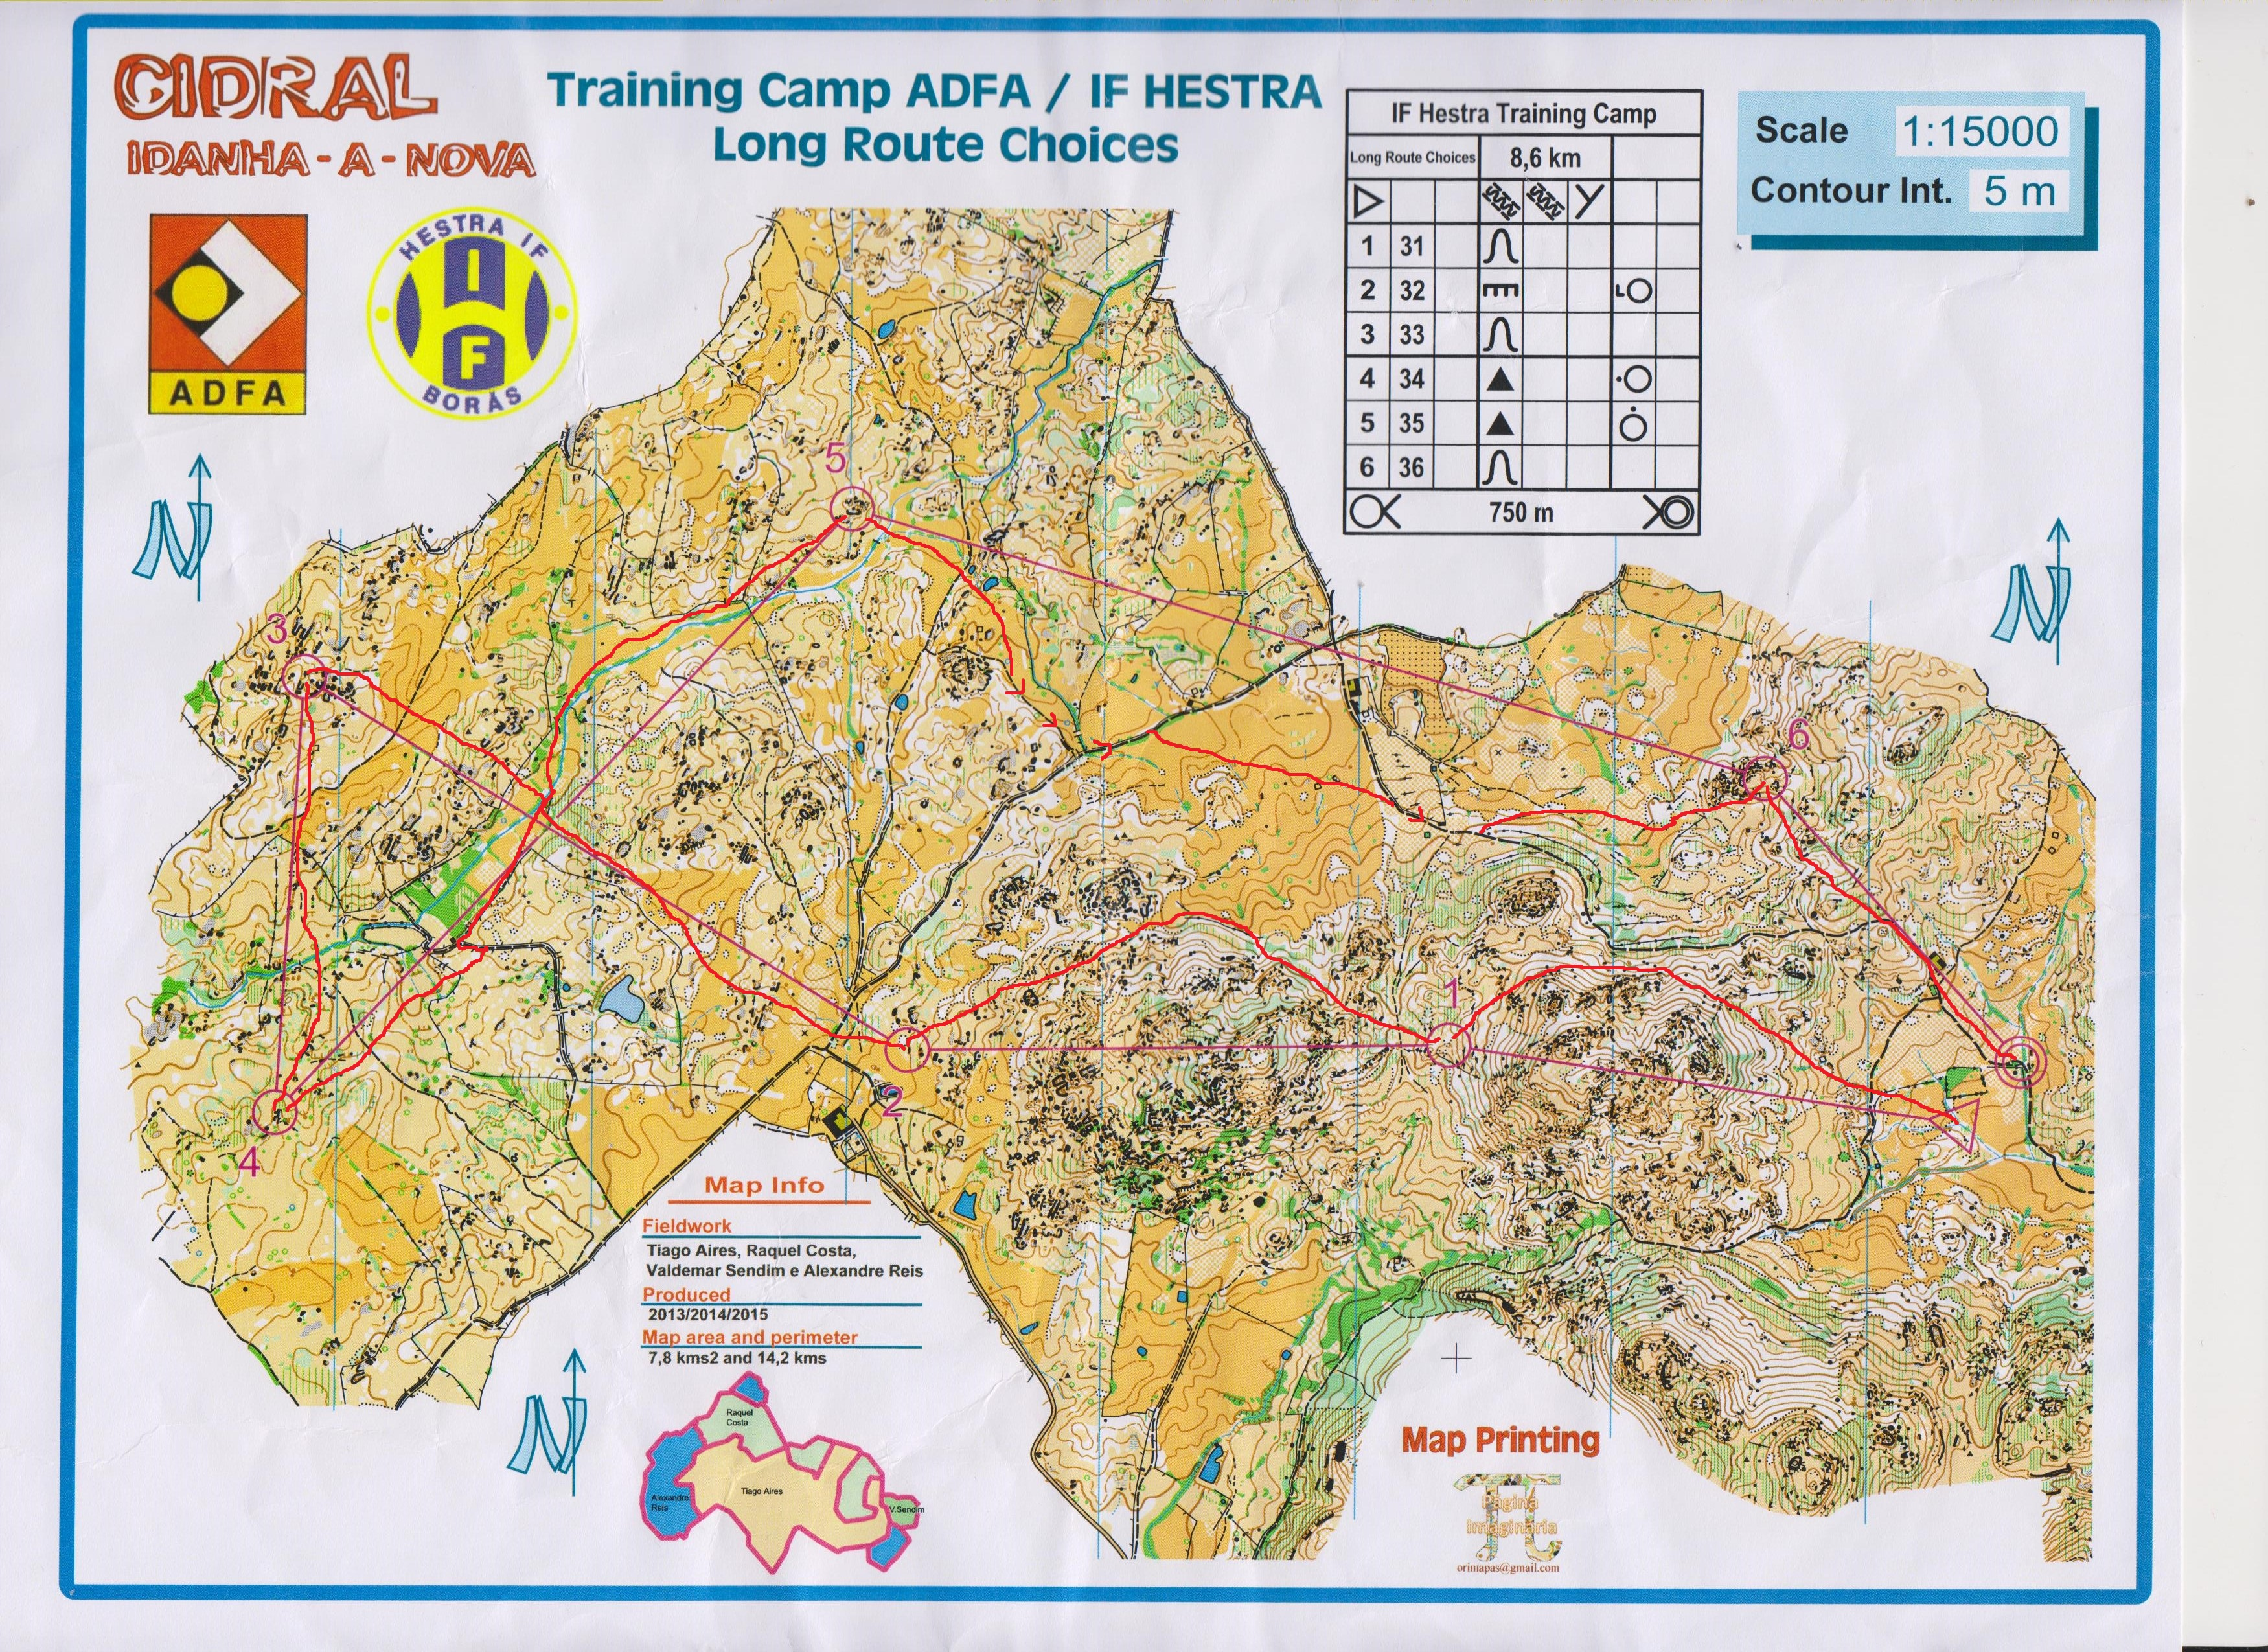 Portugal 2016 | Long Route Choices (2016-02-10)